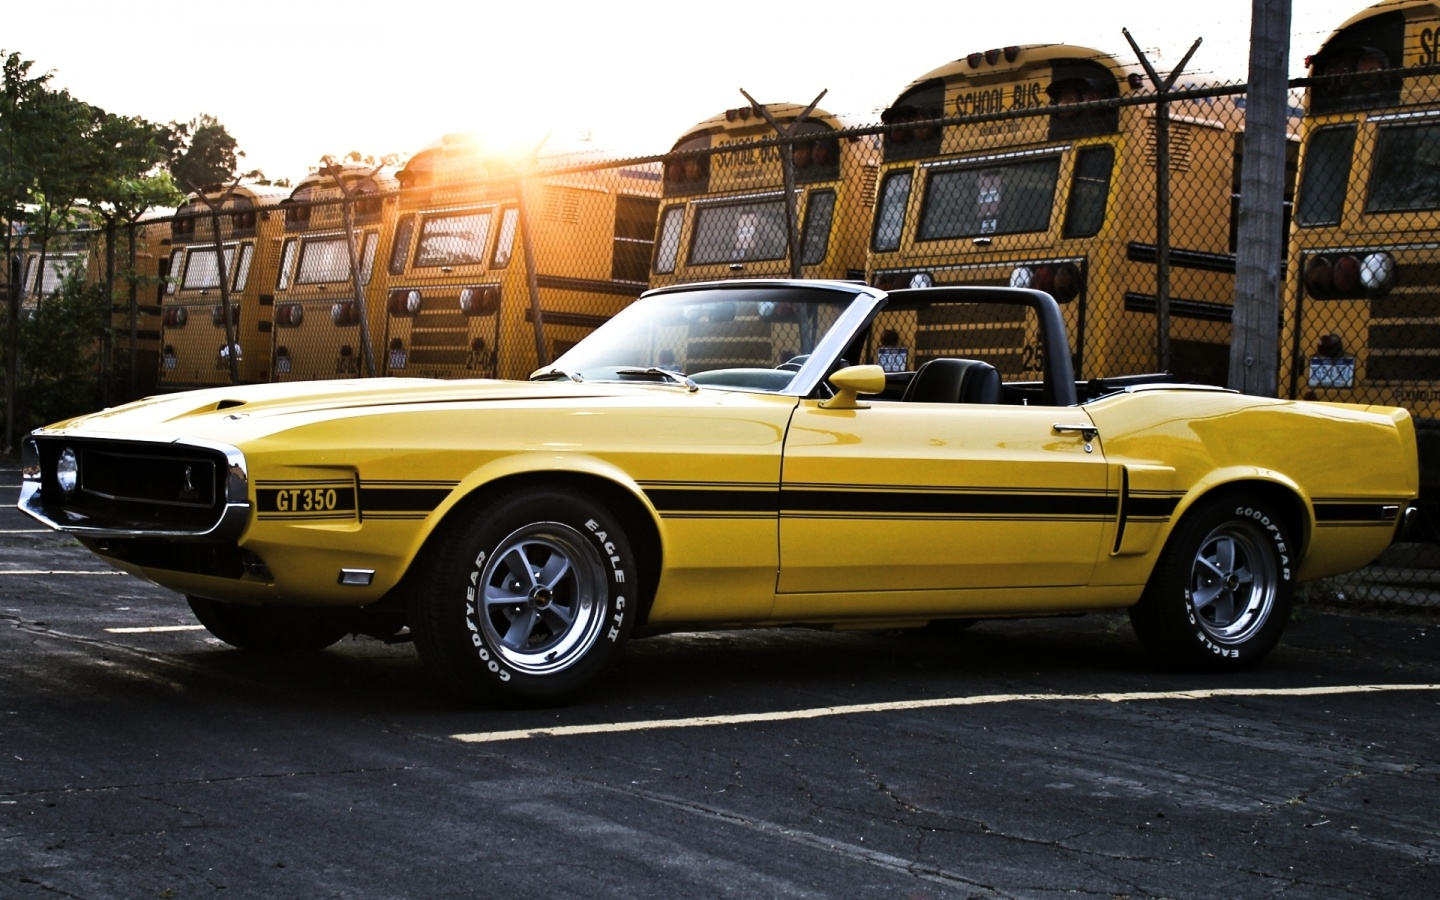 1969 Ford Mustang Shelby Gt350 Wallpapers 1440x900 450275